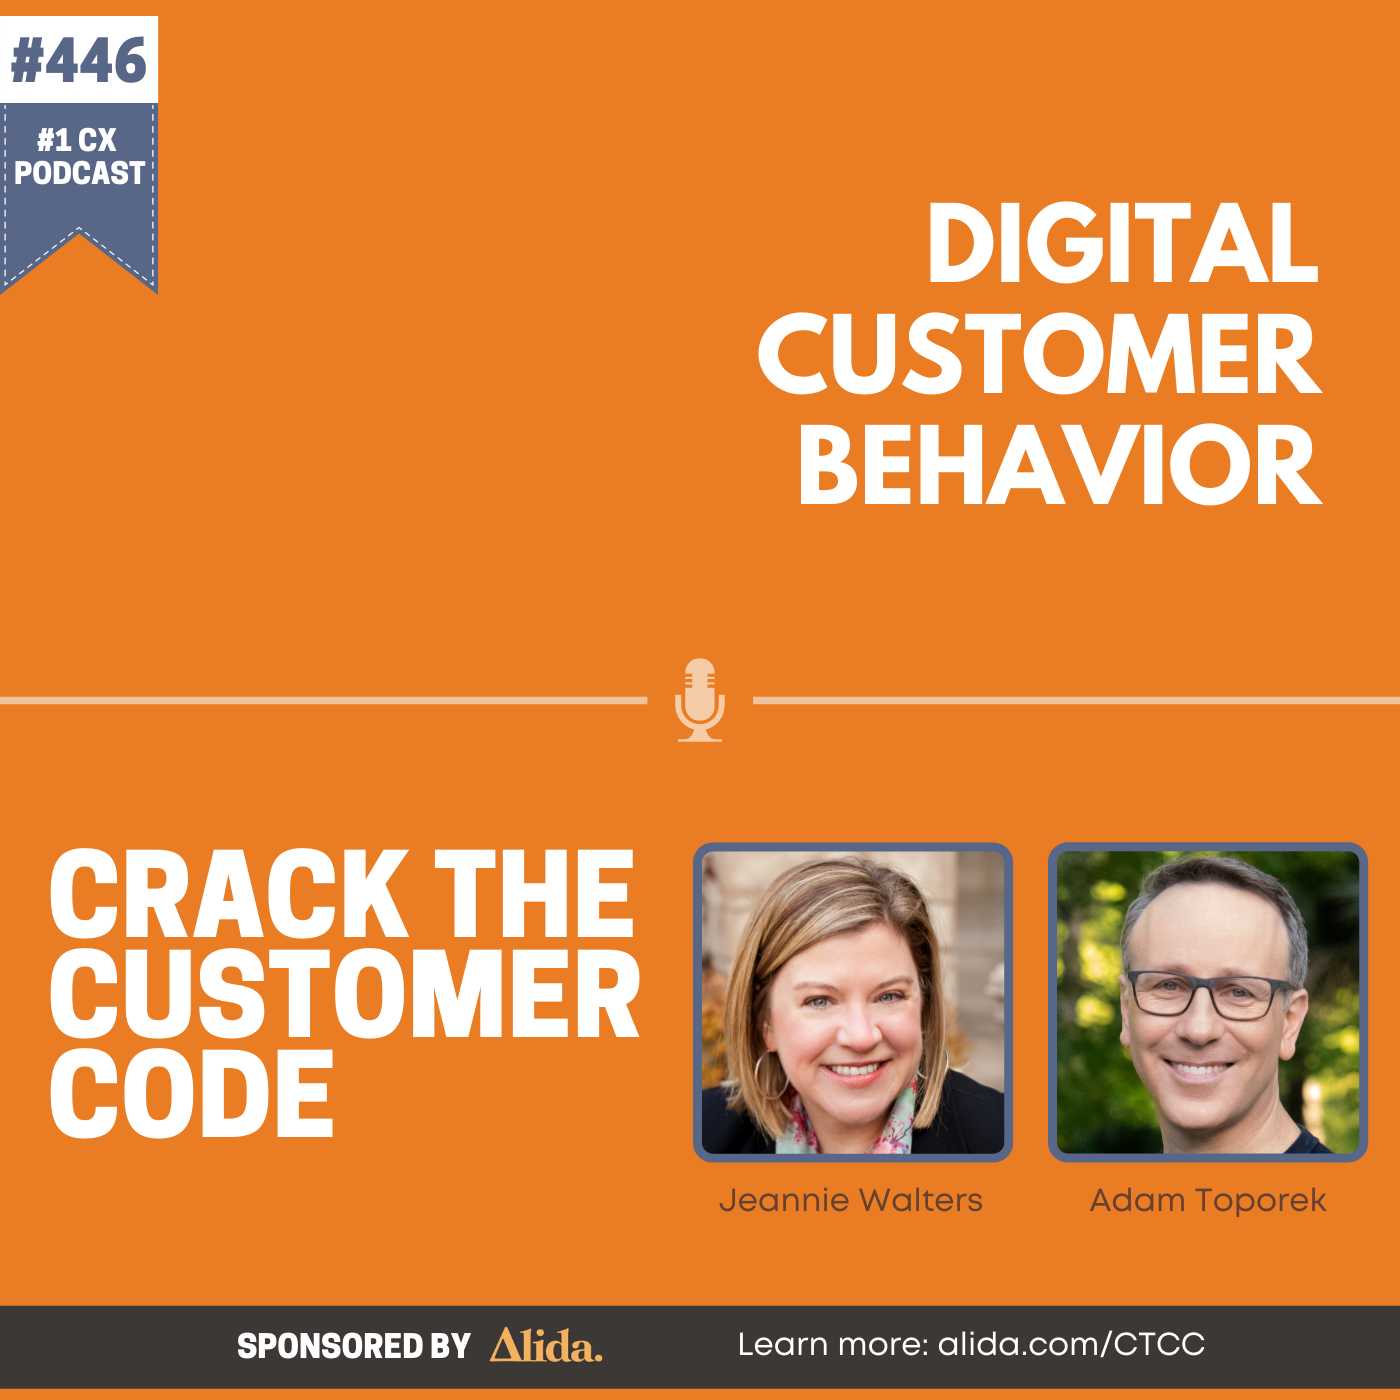 448: How Will Consumer Sentiment Affect CX in 2021?